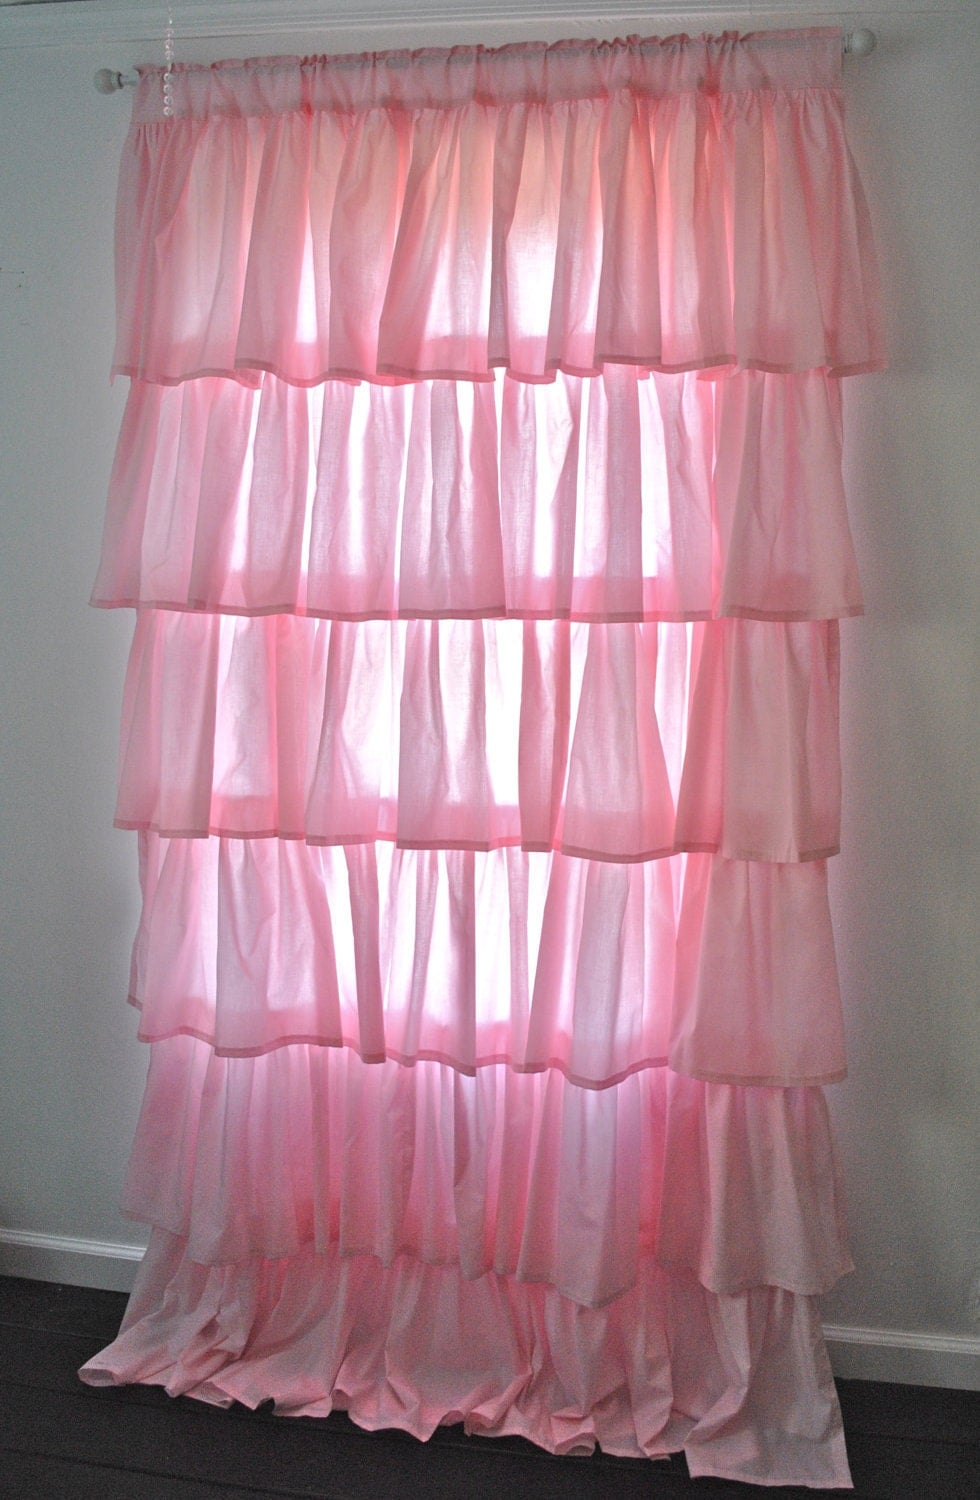 Pink Cotton Ruffled Curtain Ruffled Curtains